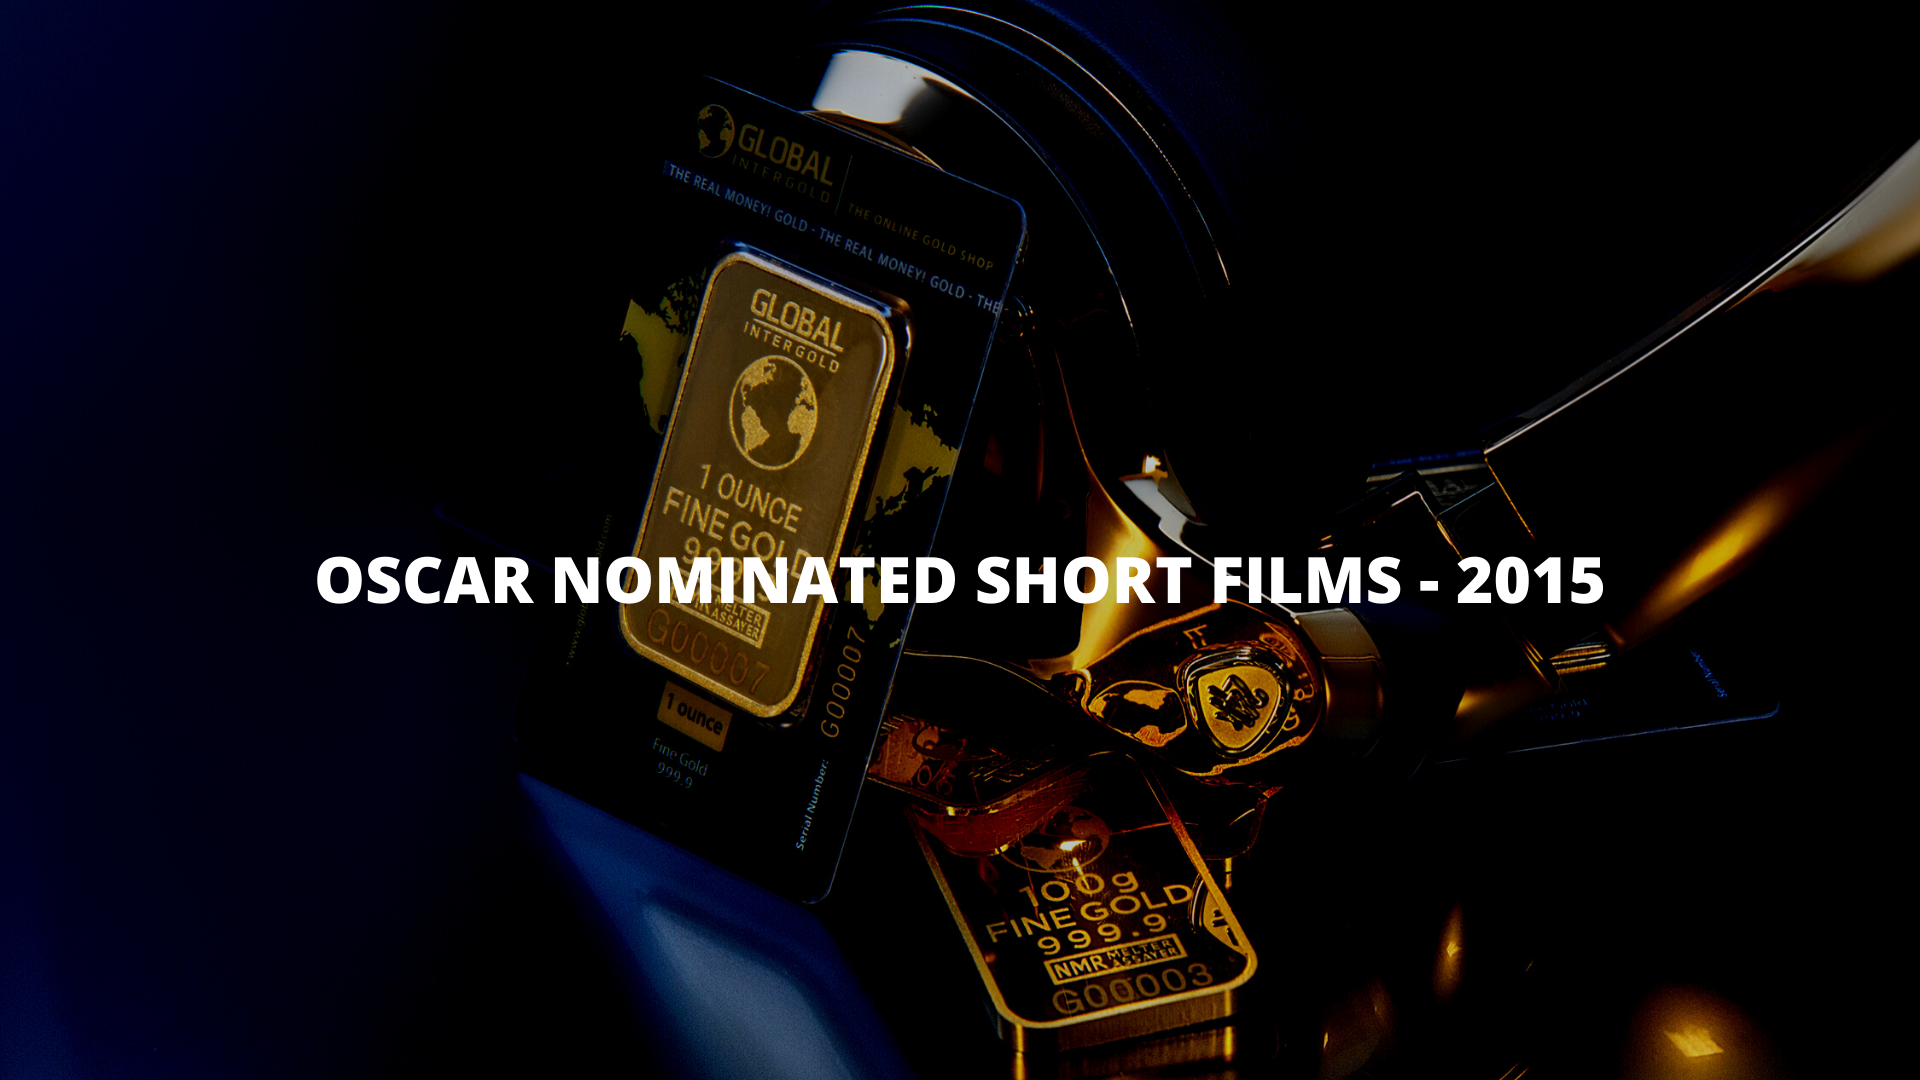 Oscar-nominated short films 2015